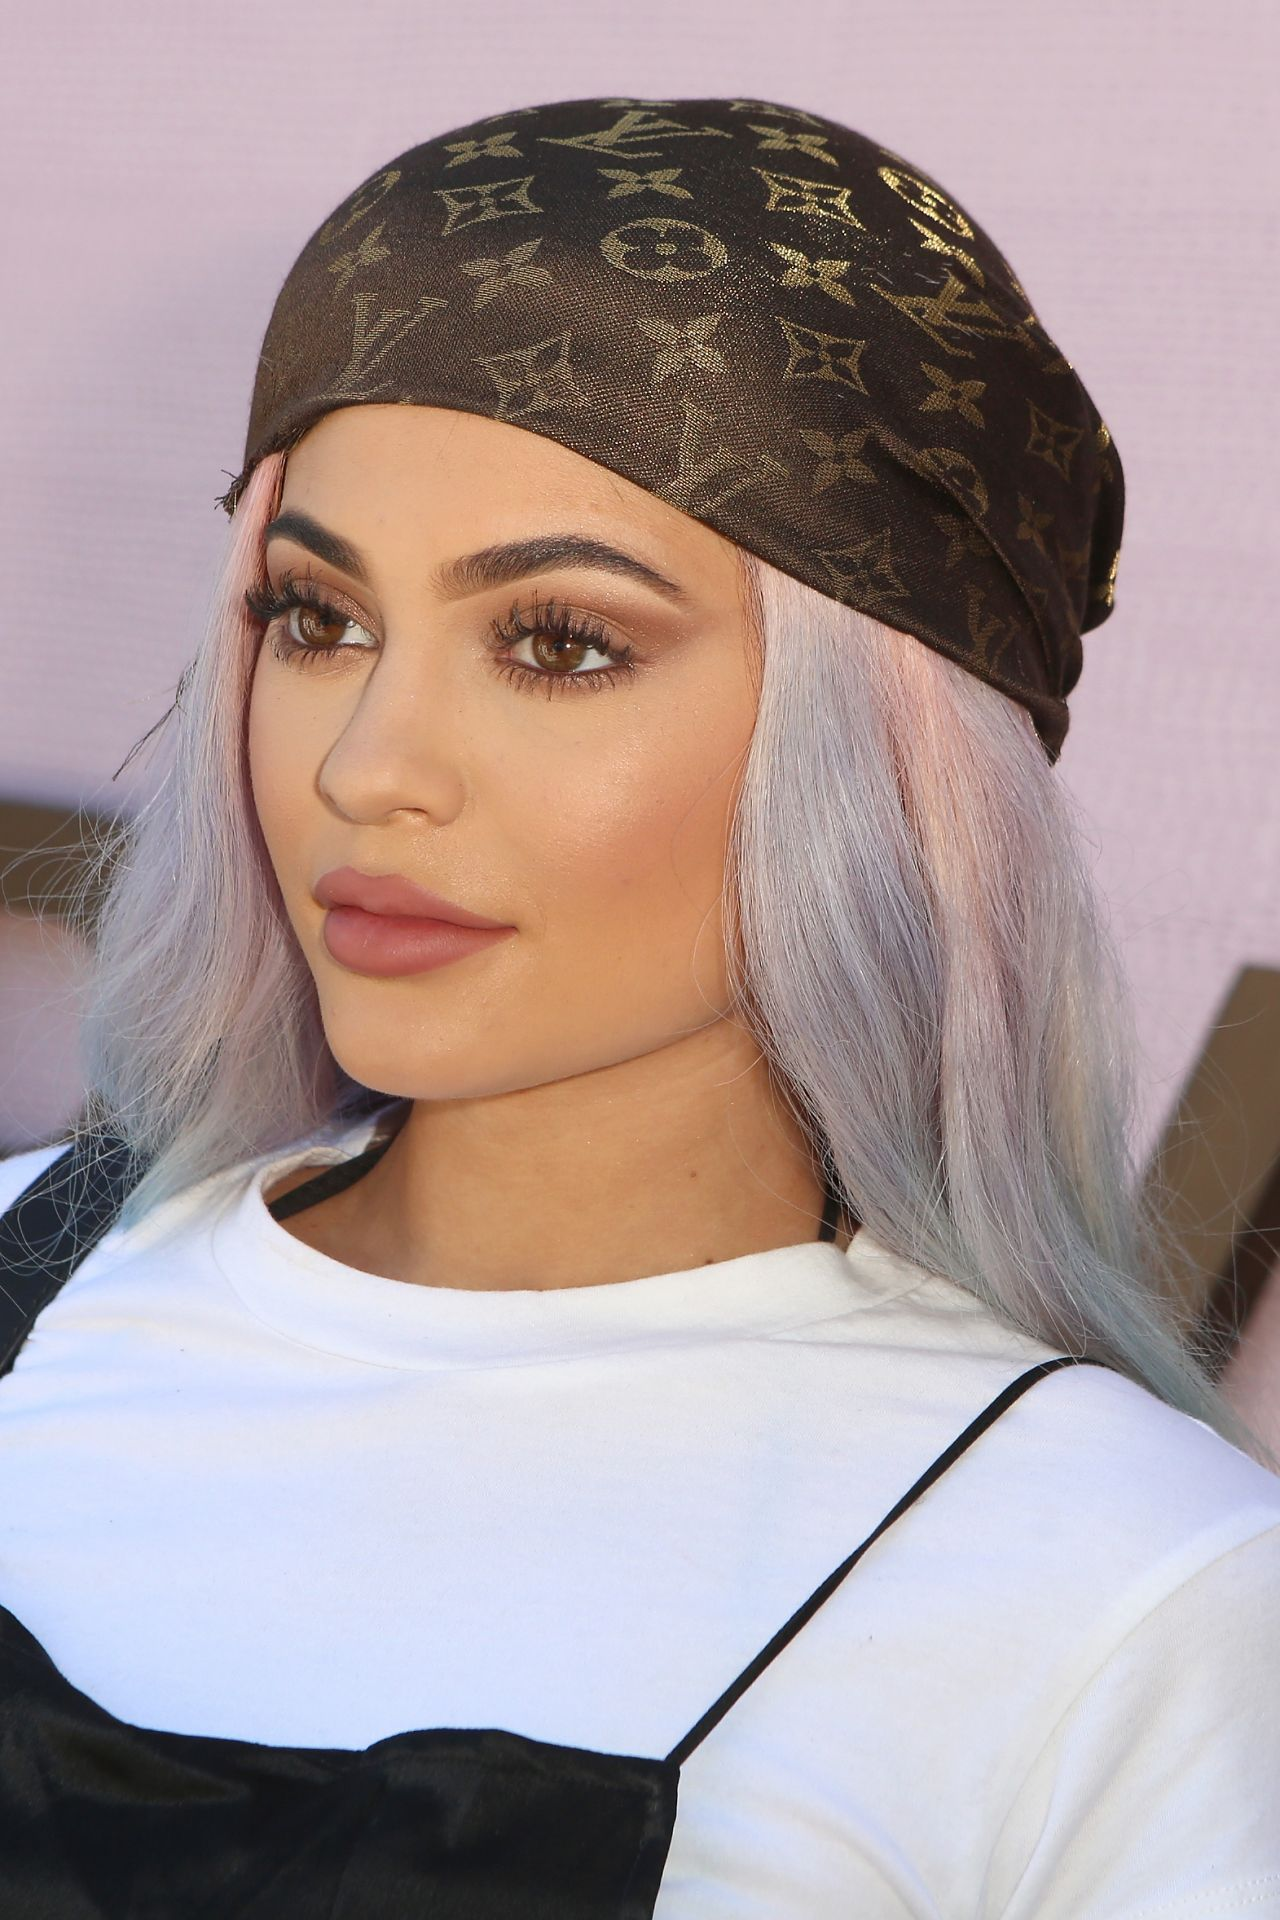 kylie jenner - photo #40